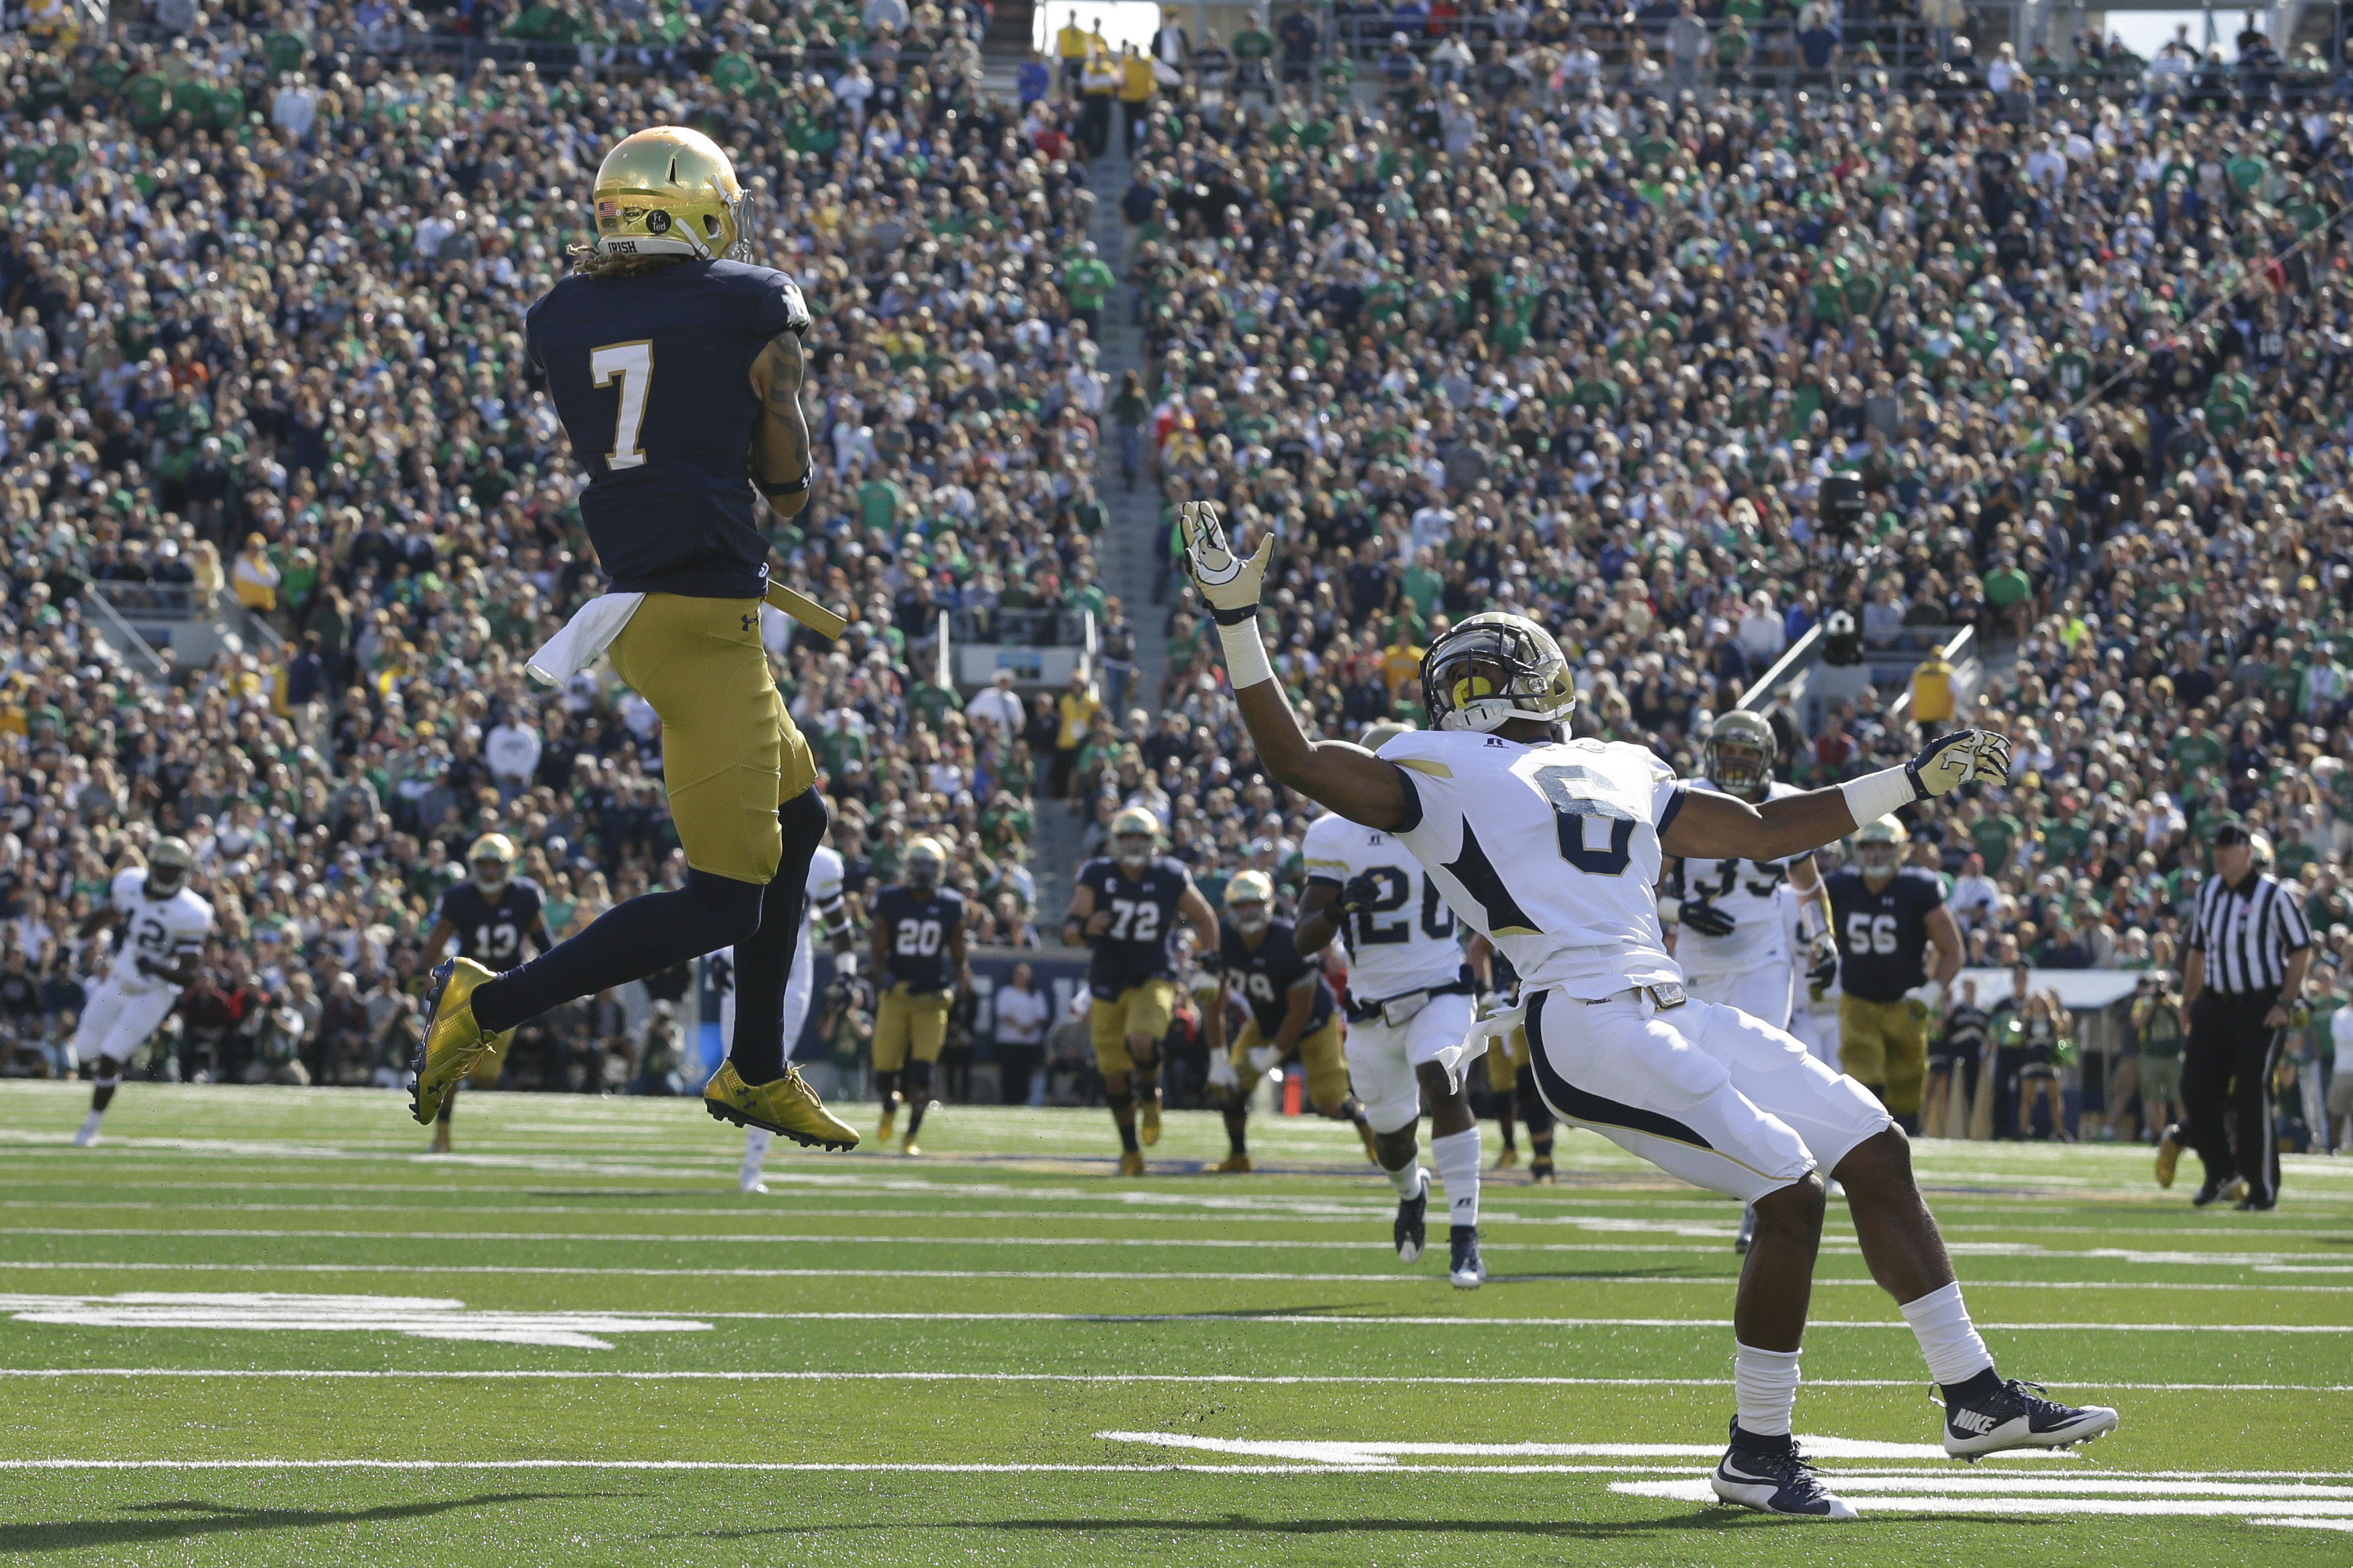 Notre Dame wide receiver Will Fuller (7) makes a catch for a touchdown over Georgia Tech defensive back Chris Milton (6) during the first half of an NCAA college football game in South Bend, Ind., Saturday, Sept. 19, 2015. (AP Photo/Michael Conroy)